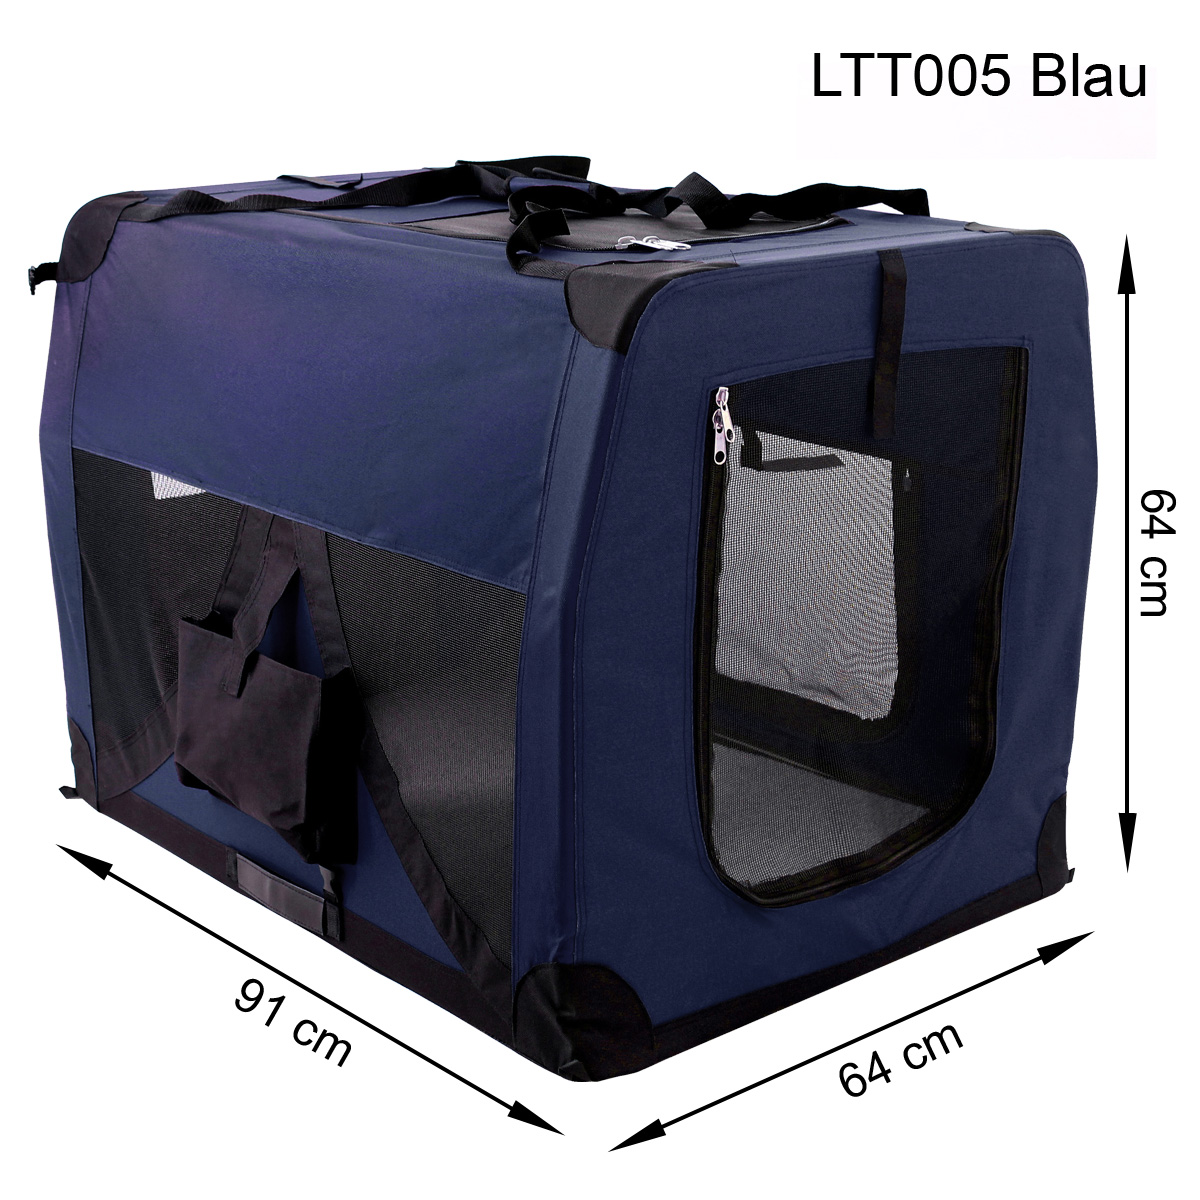 faltbare transportbox schlafplatz f r hund und katzen auto transport box ebay. Black Bedroom Furniture Sets. Home Design Ideas